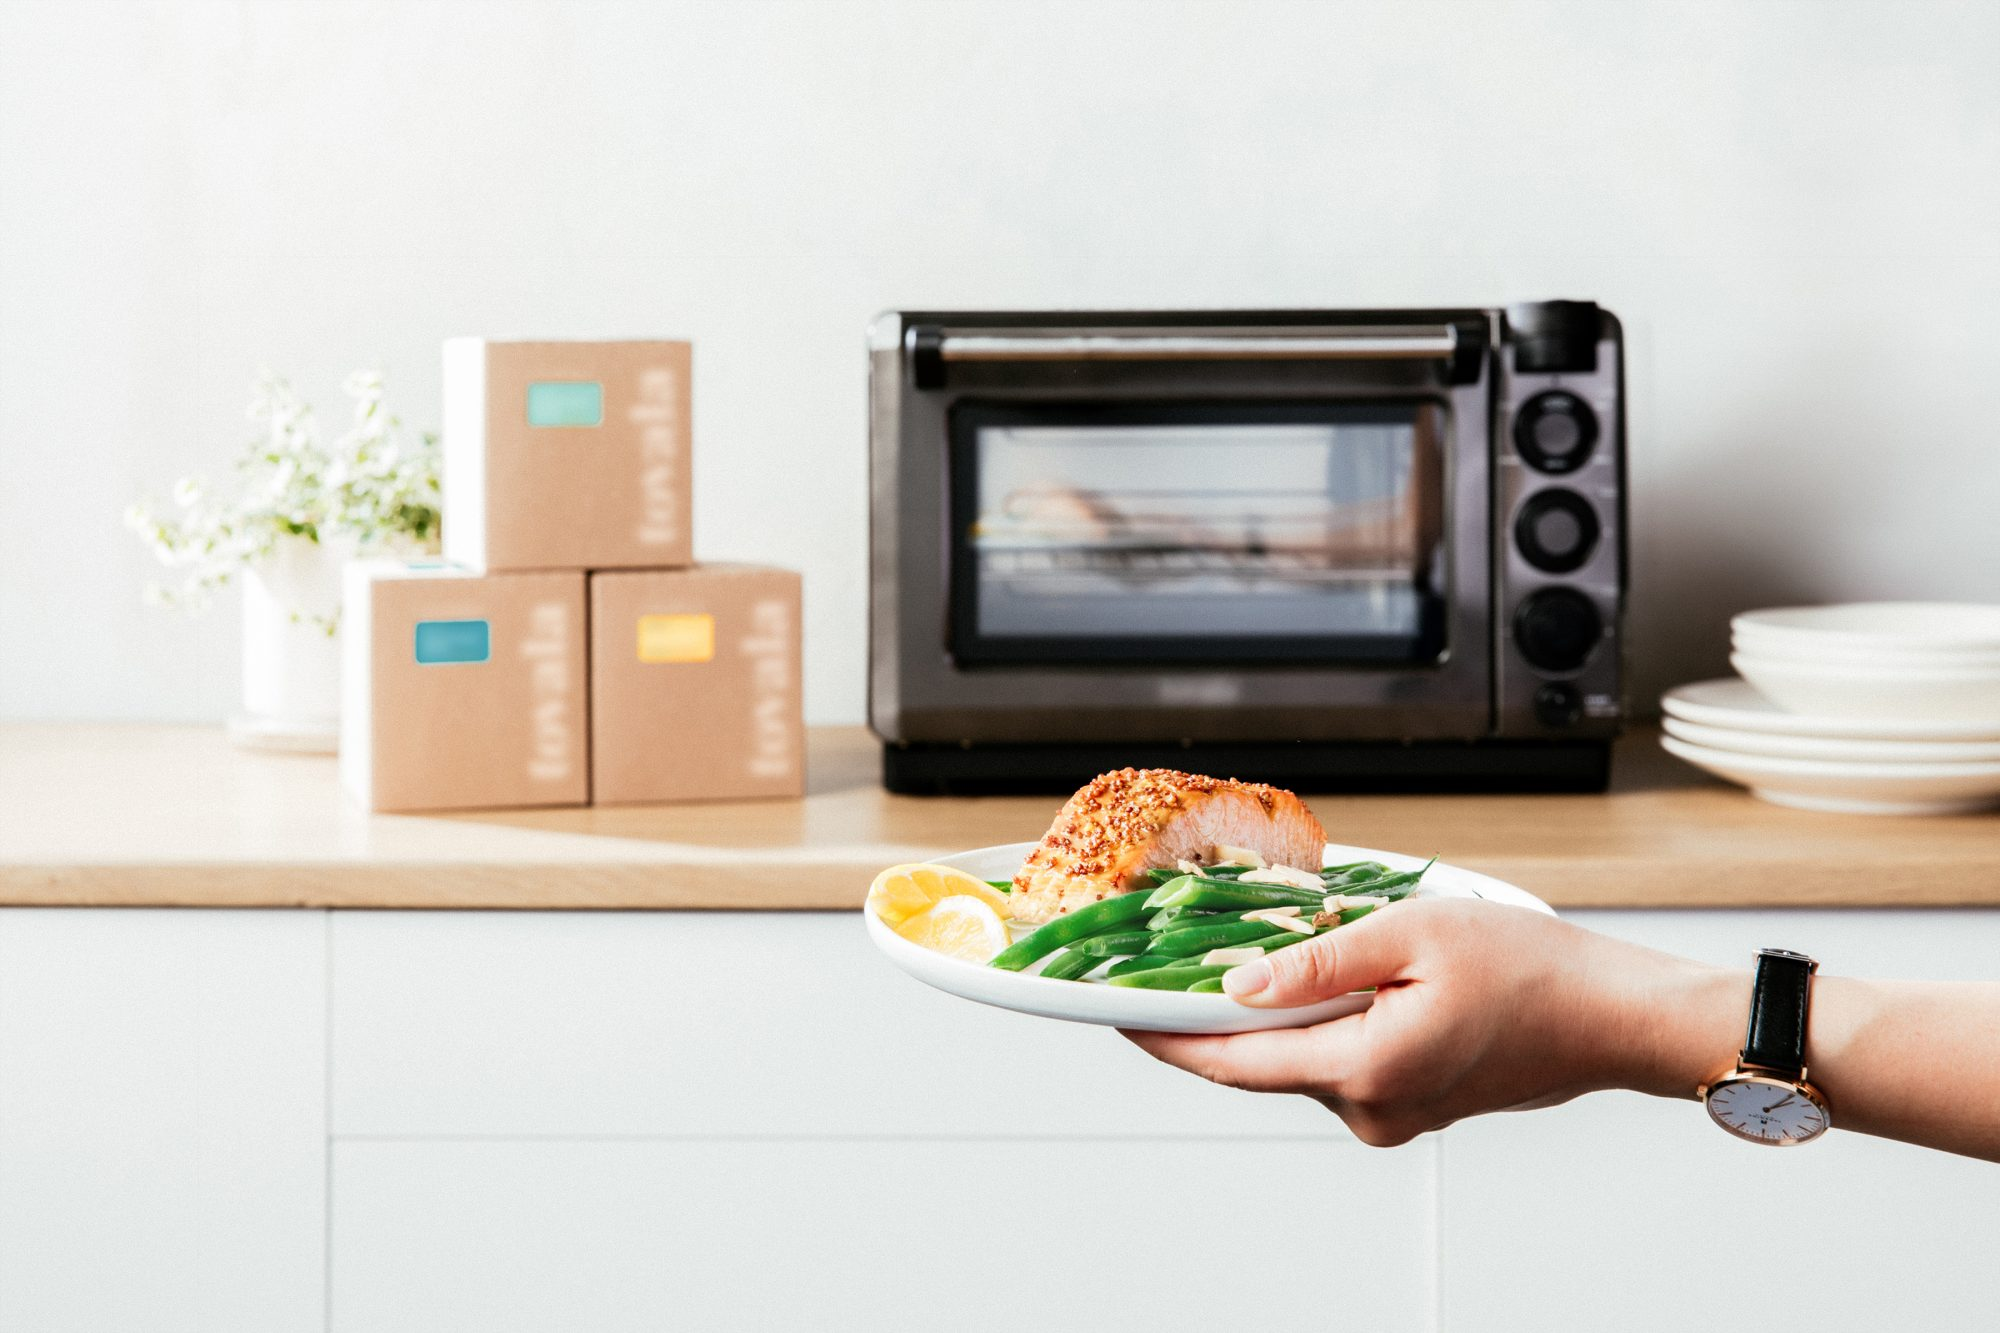 hands holding a plate of food in front of tovala oven and subsctiption meal kit boxes